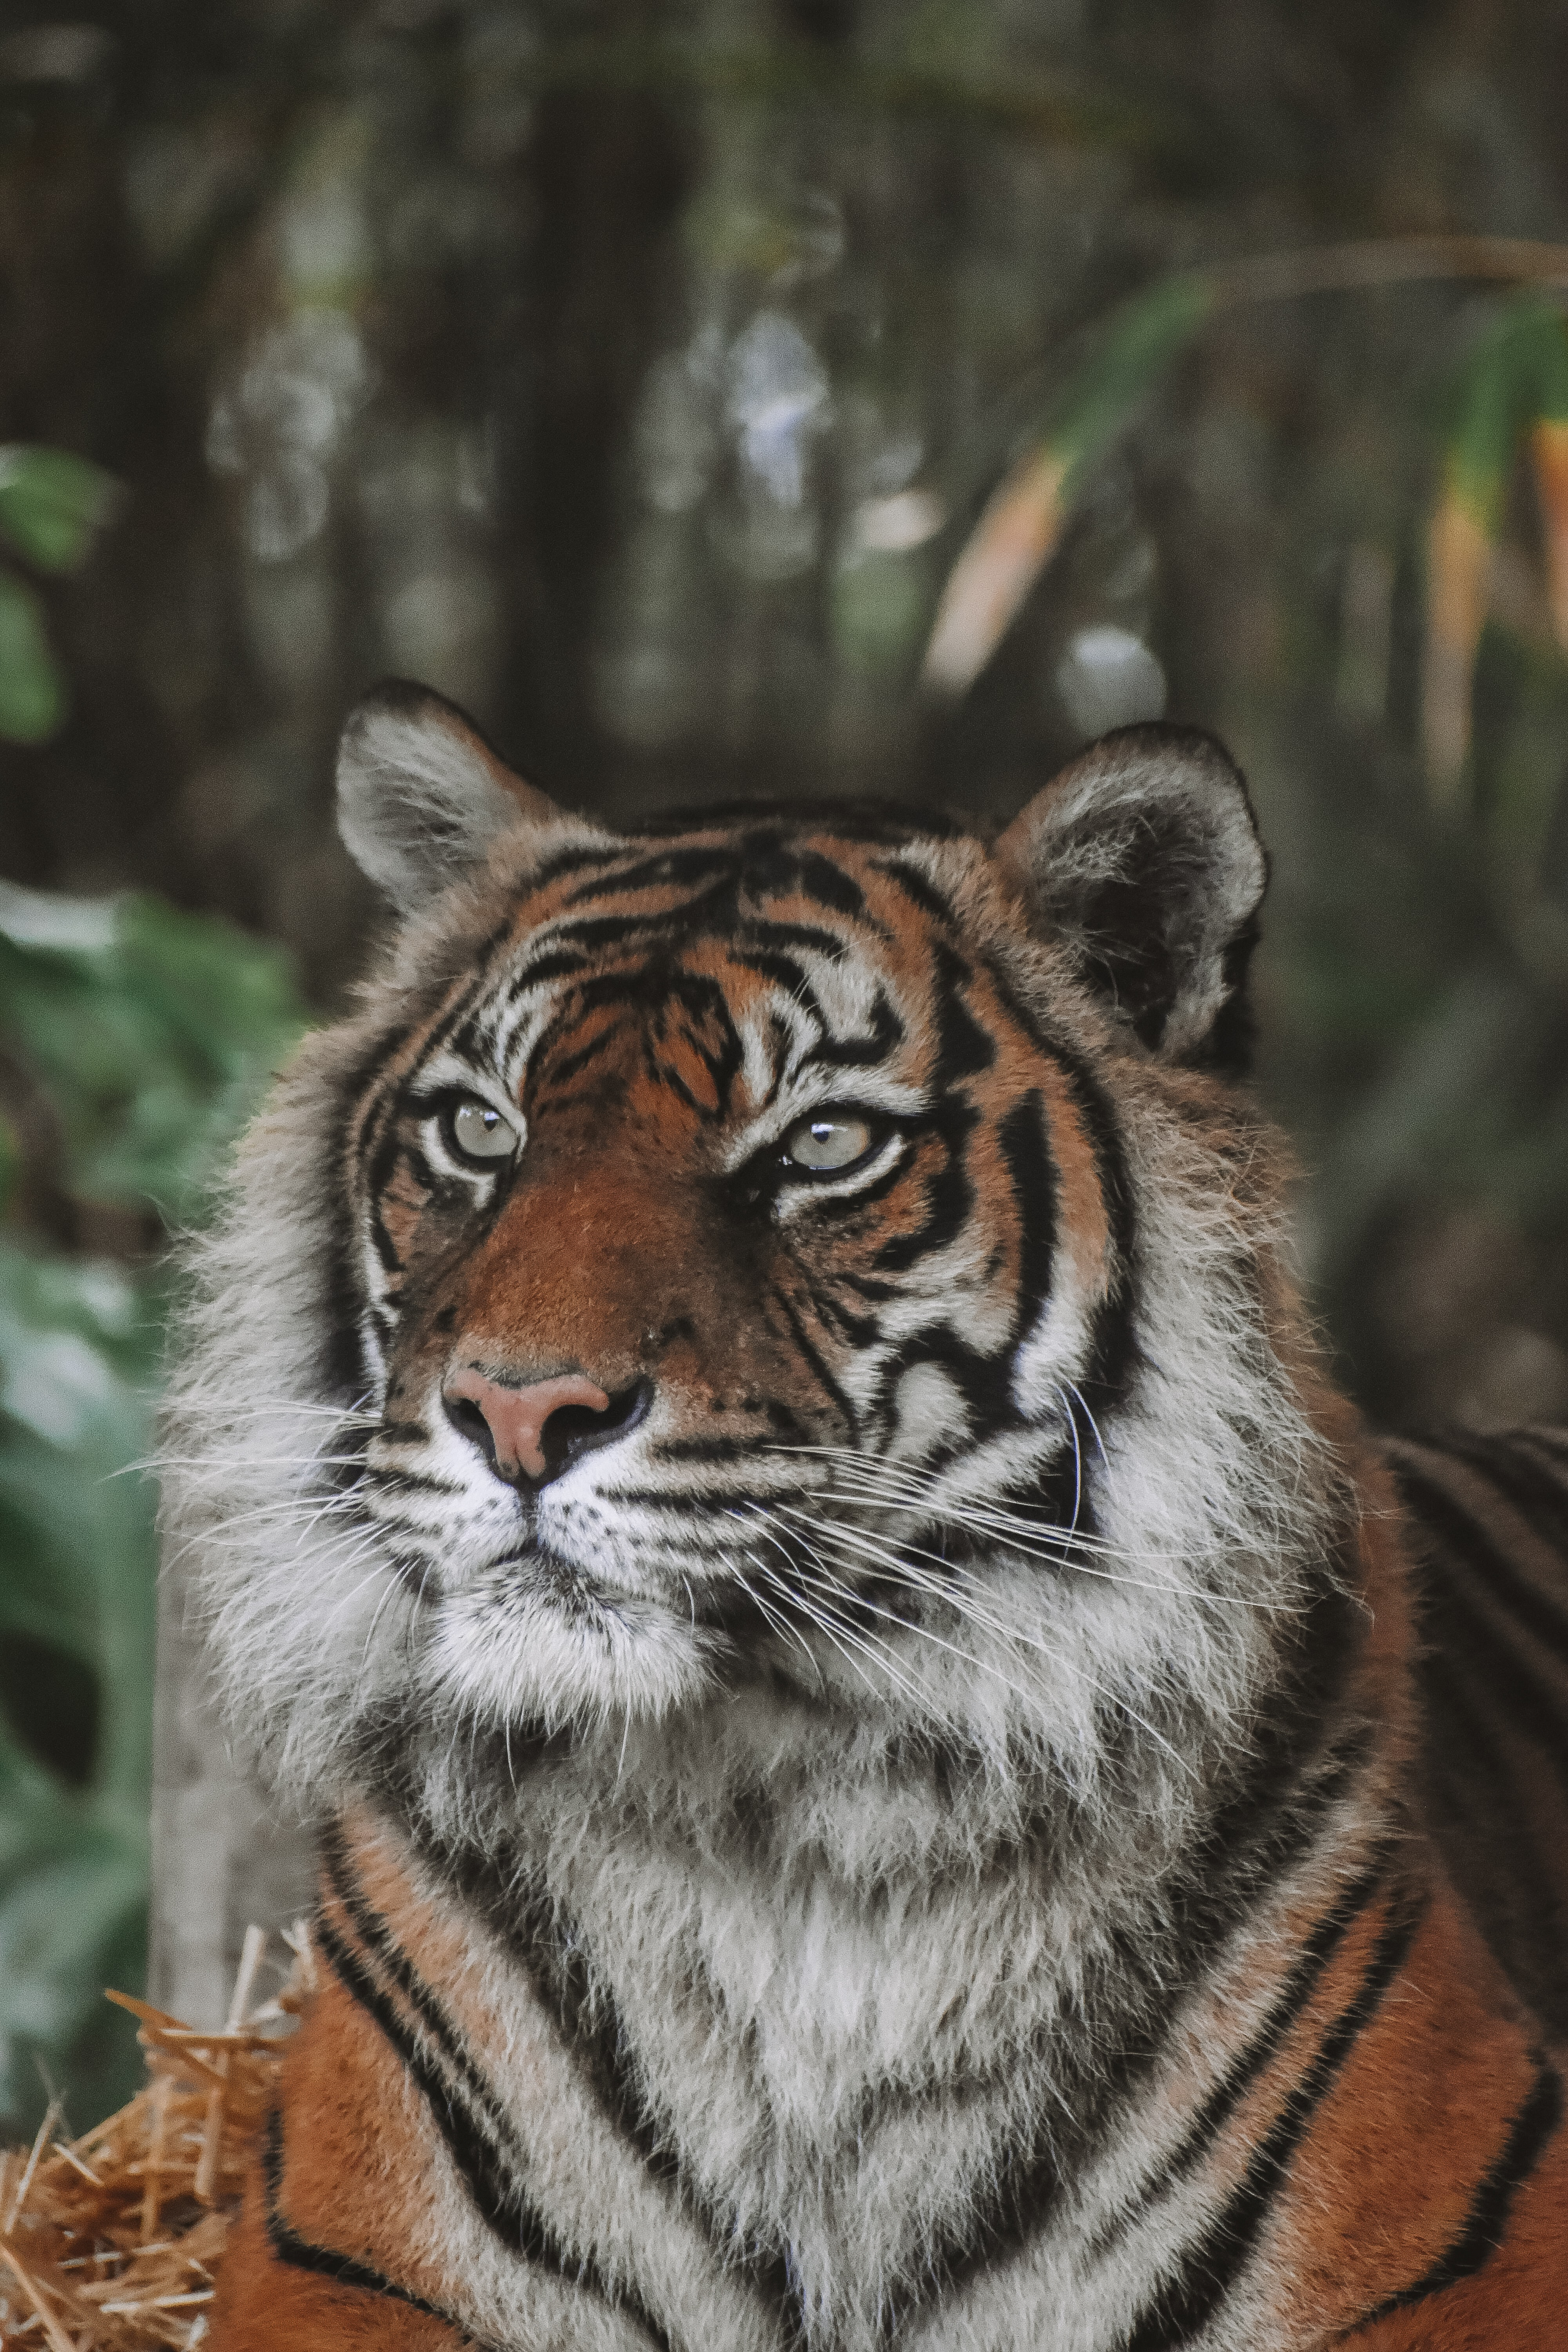 118837 download wallpaper Animals, Tiger, Predator, Big Cat, Animal, Wildlife screensavers and pictures for free